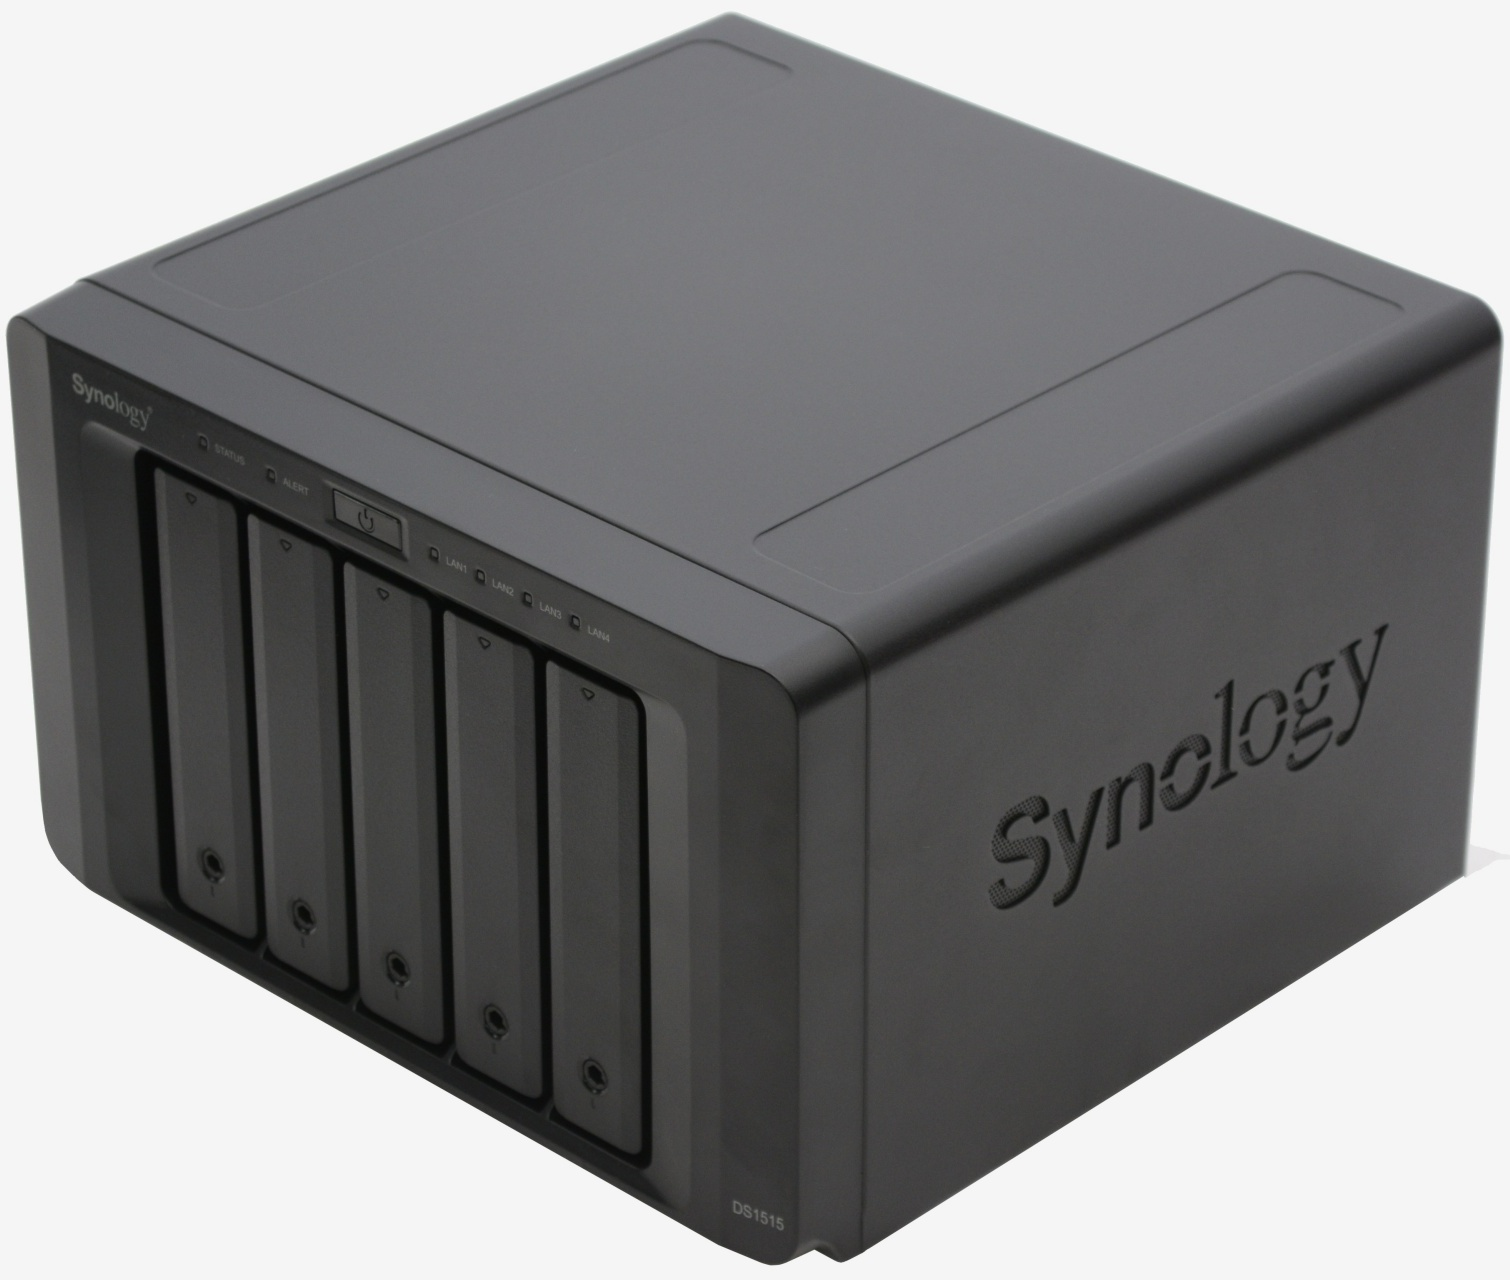 Synology DiskStation DS1515 Review - TechSpot